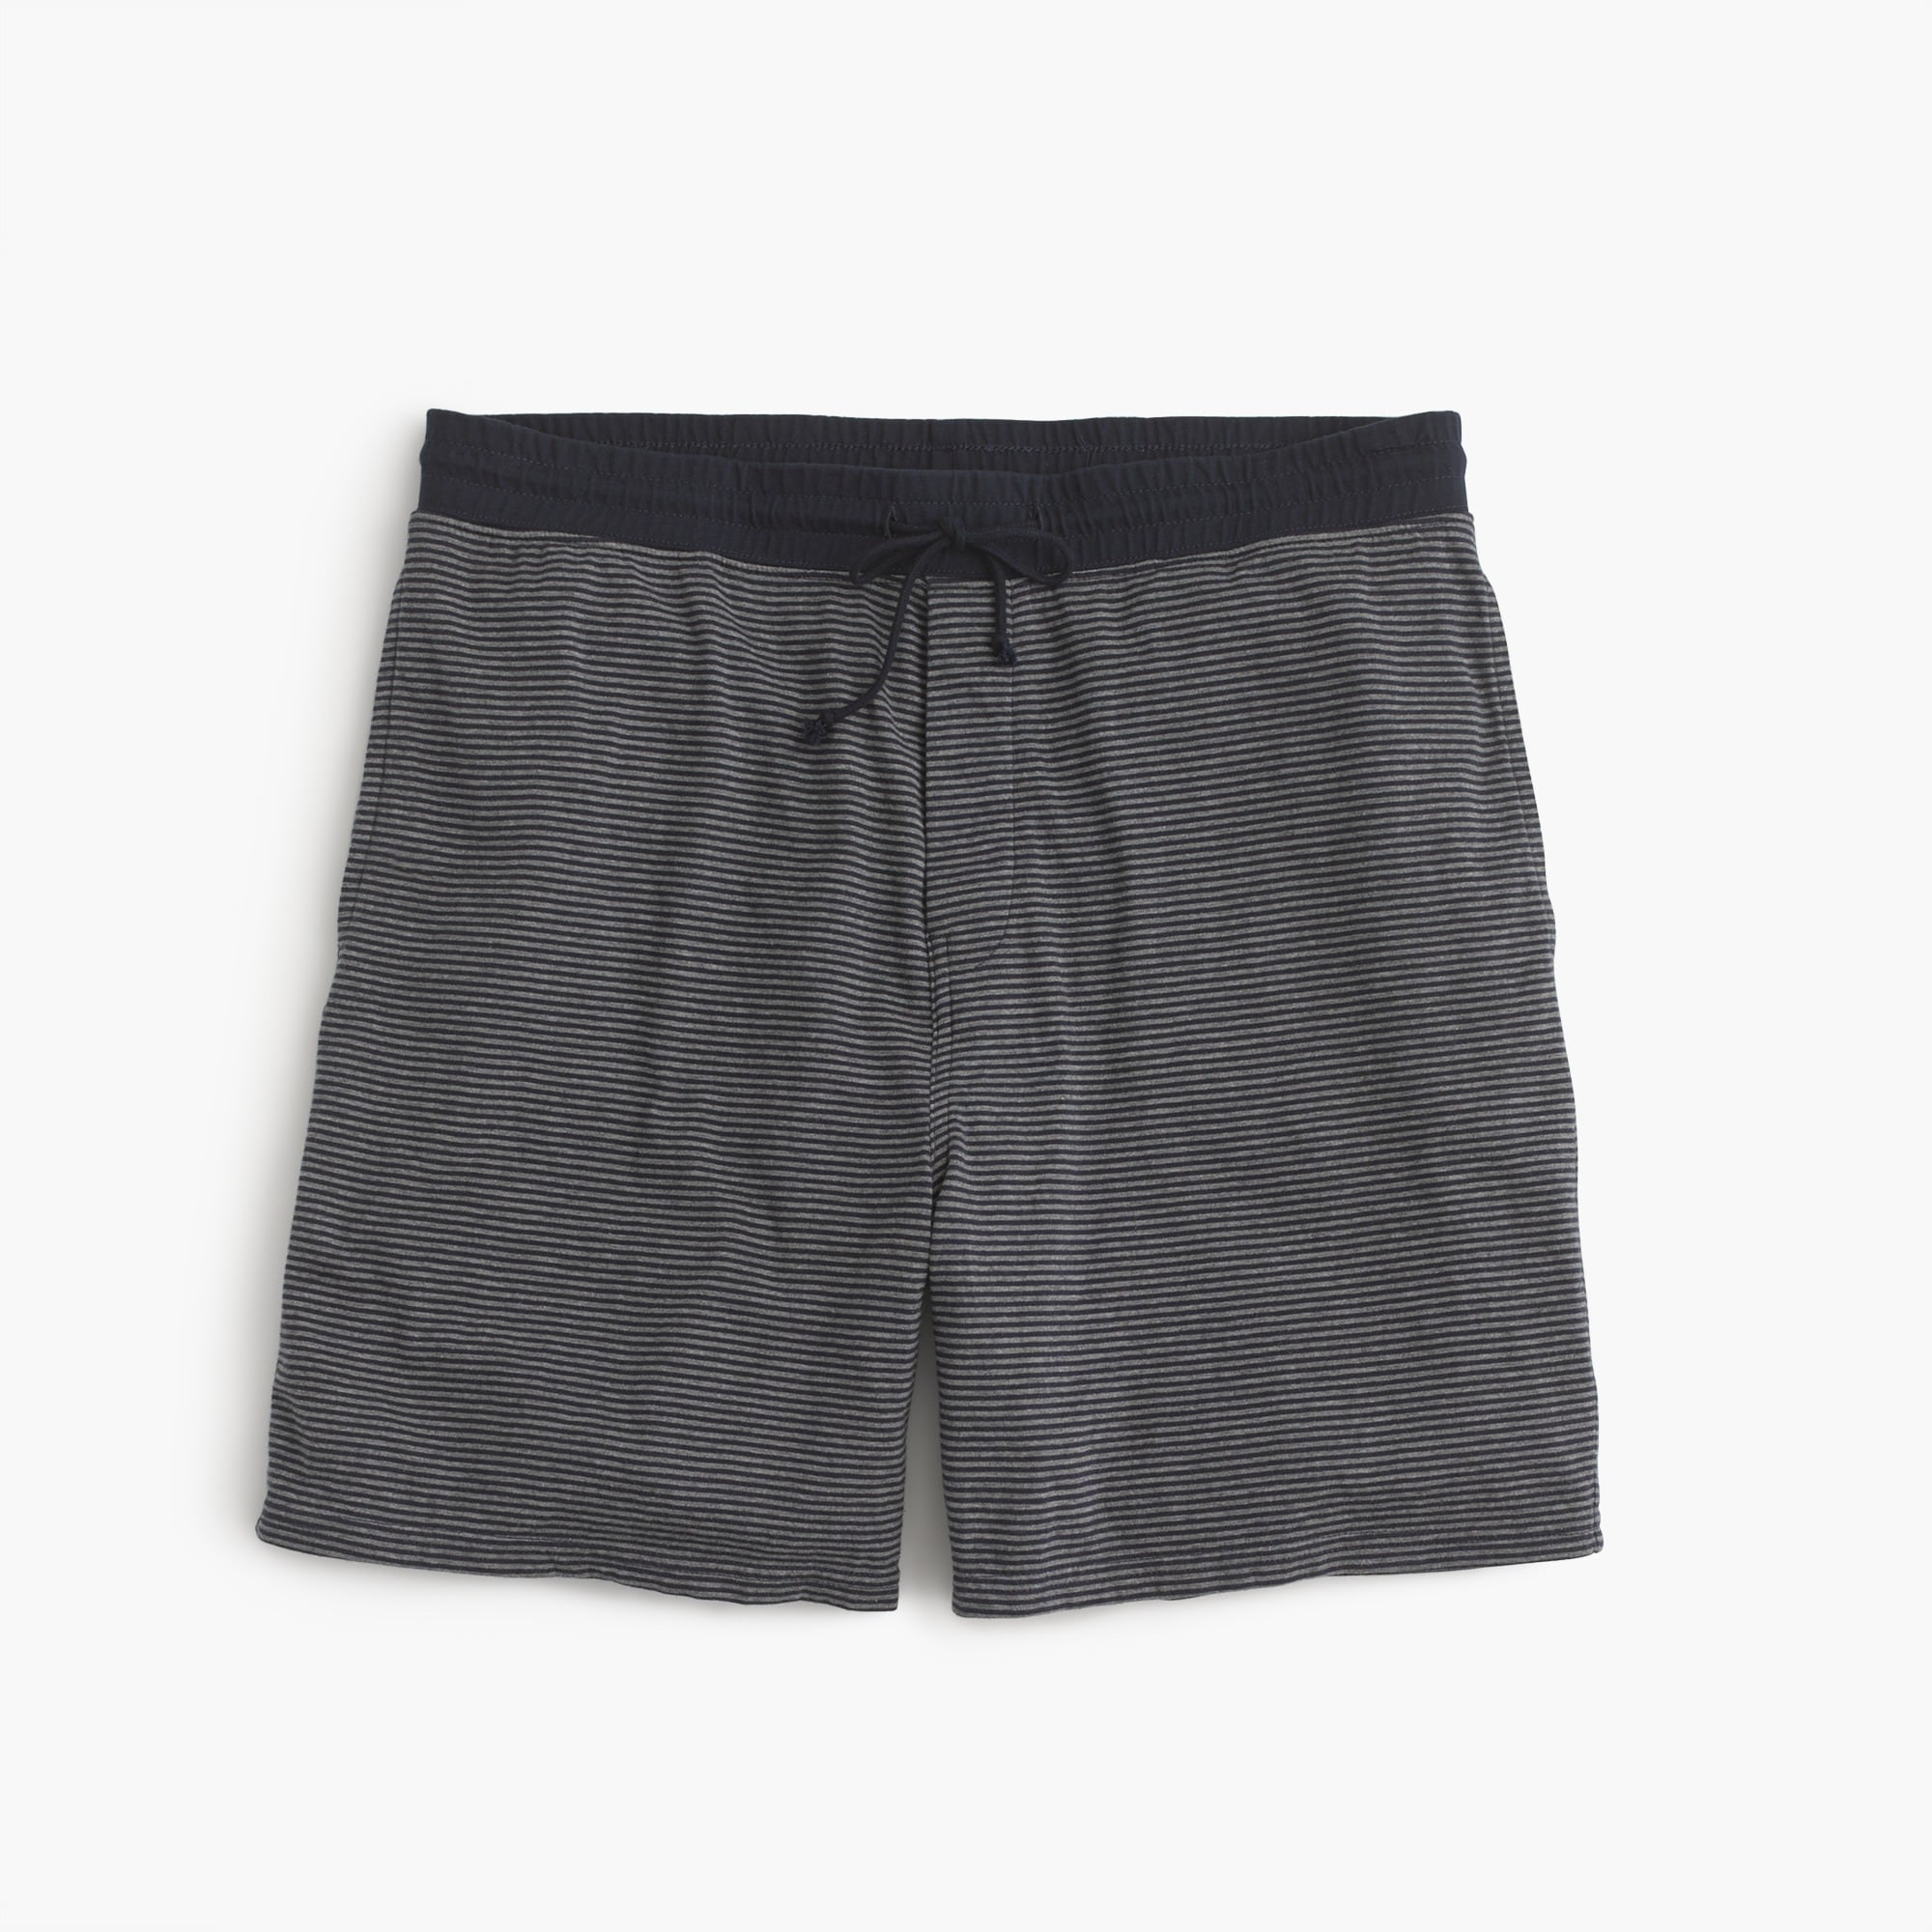 Cotton pajama short